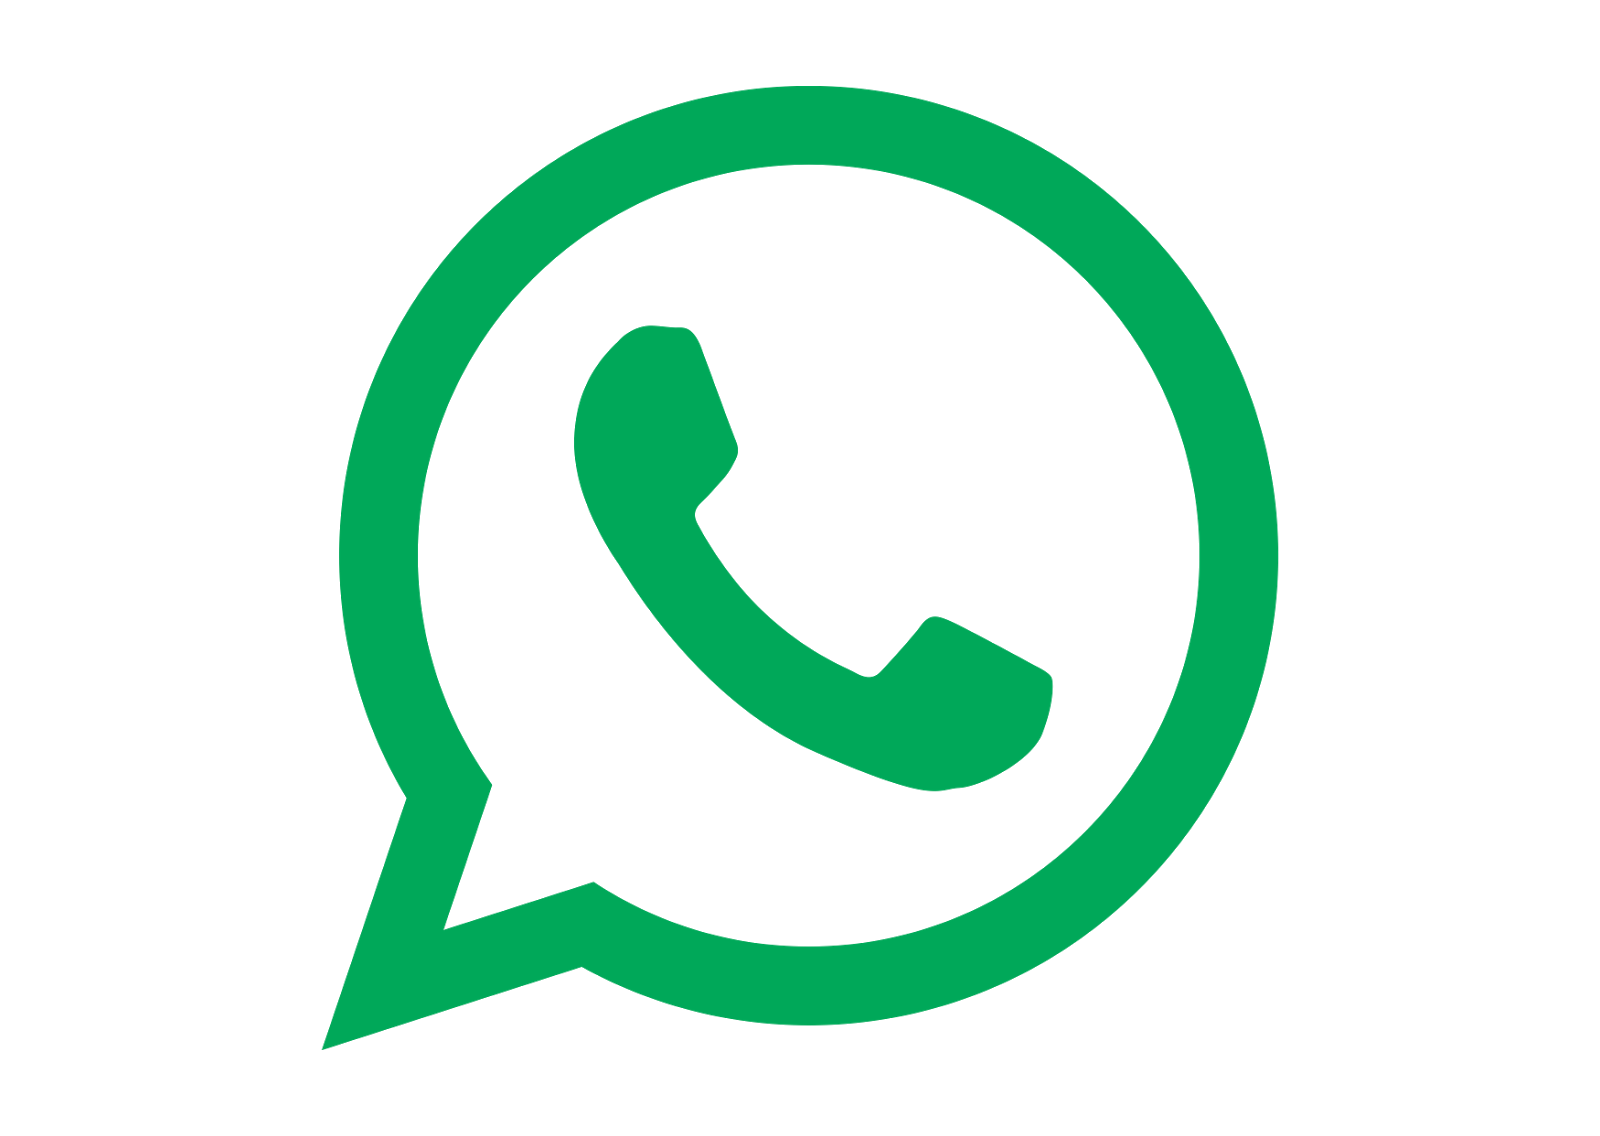 Logo whatsapp png blanco. Transparent pictures free icons